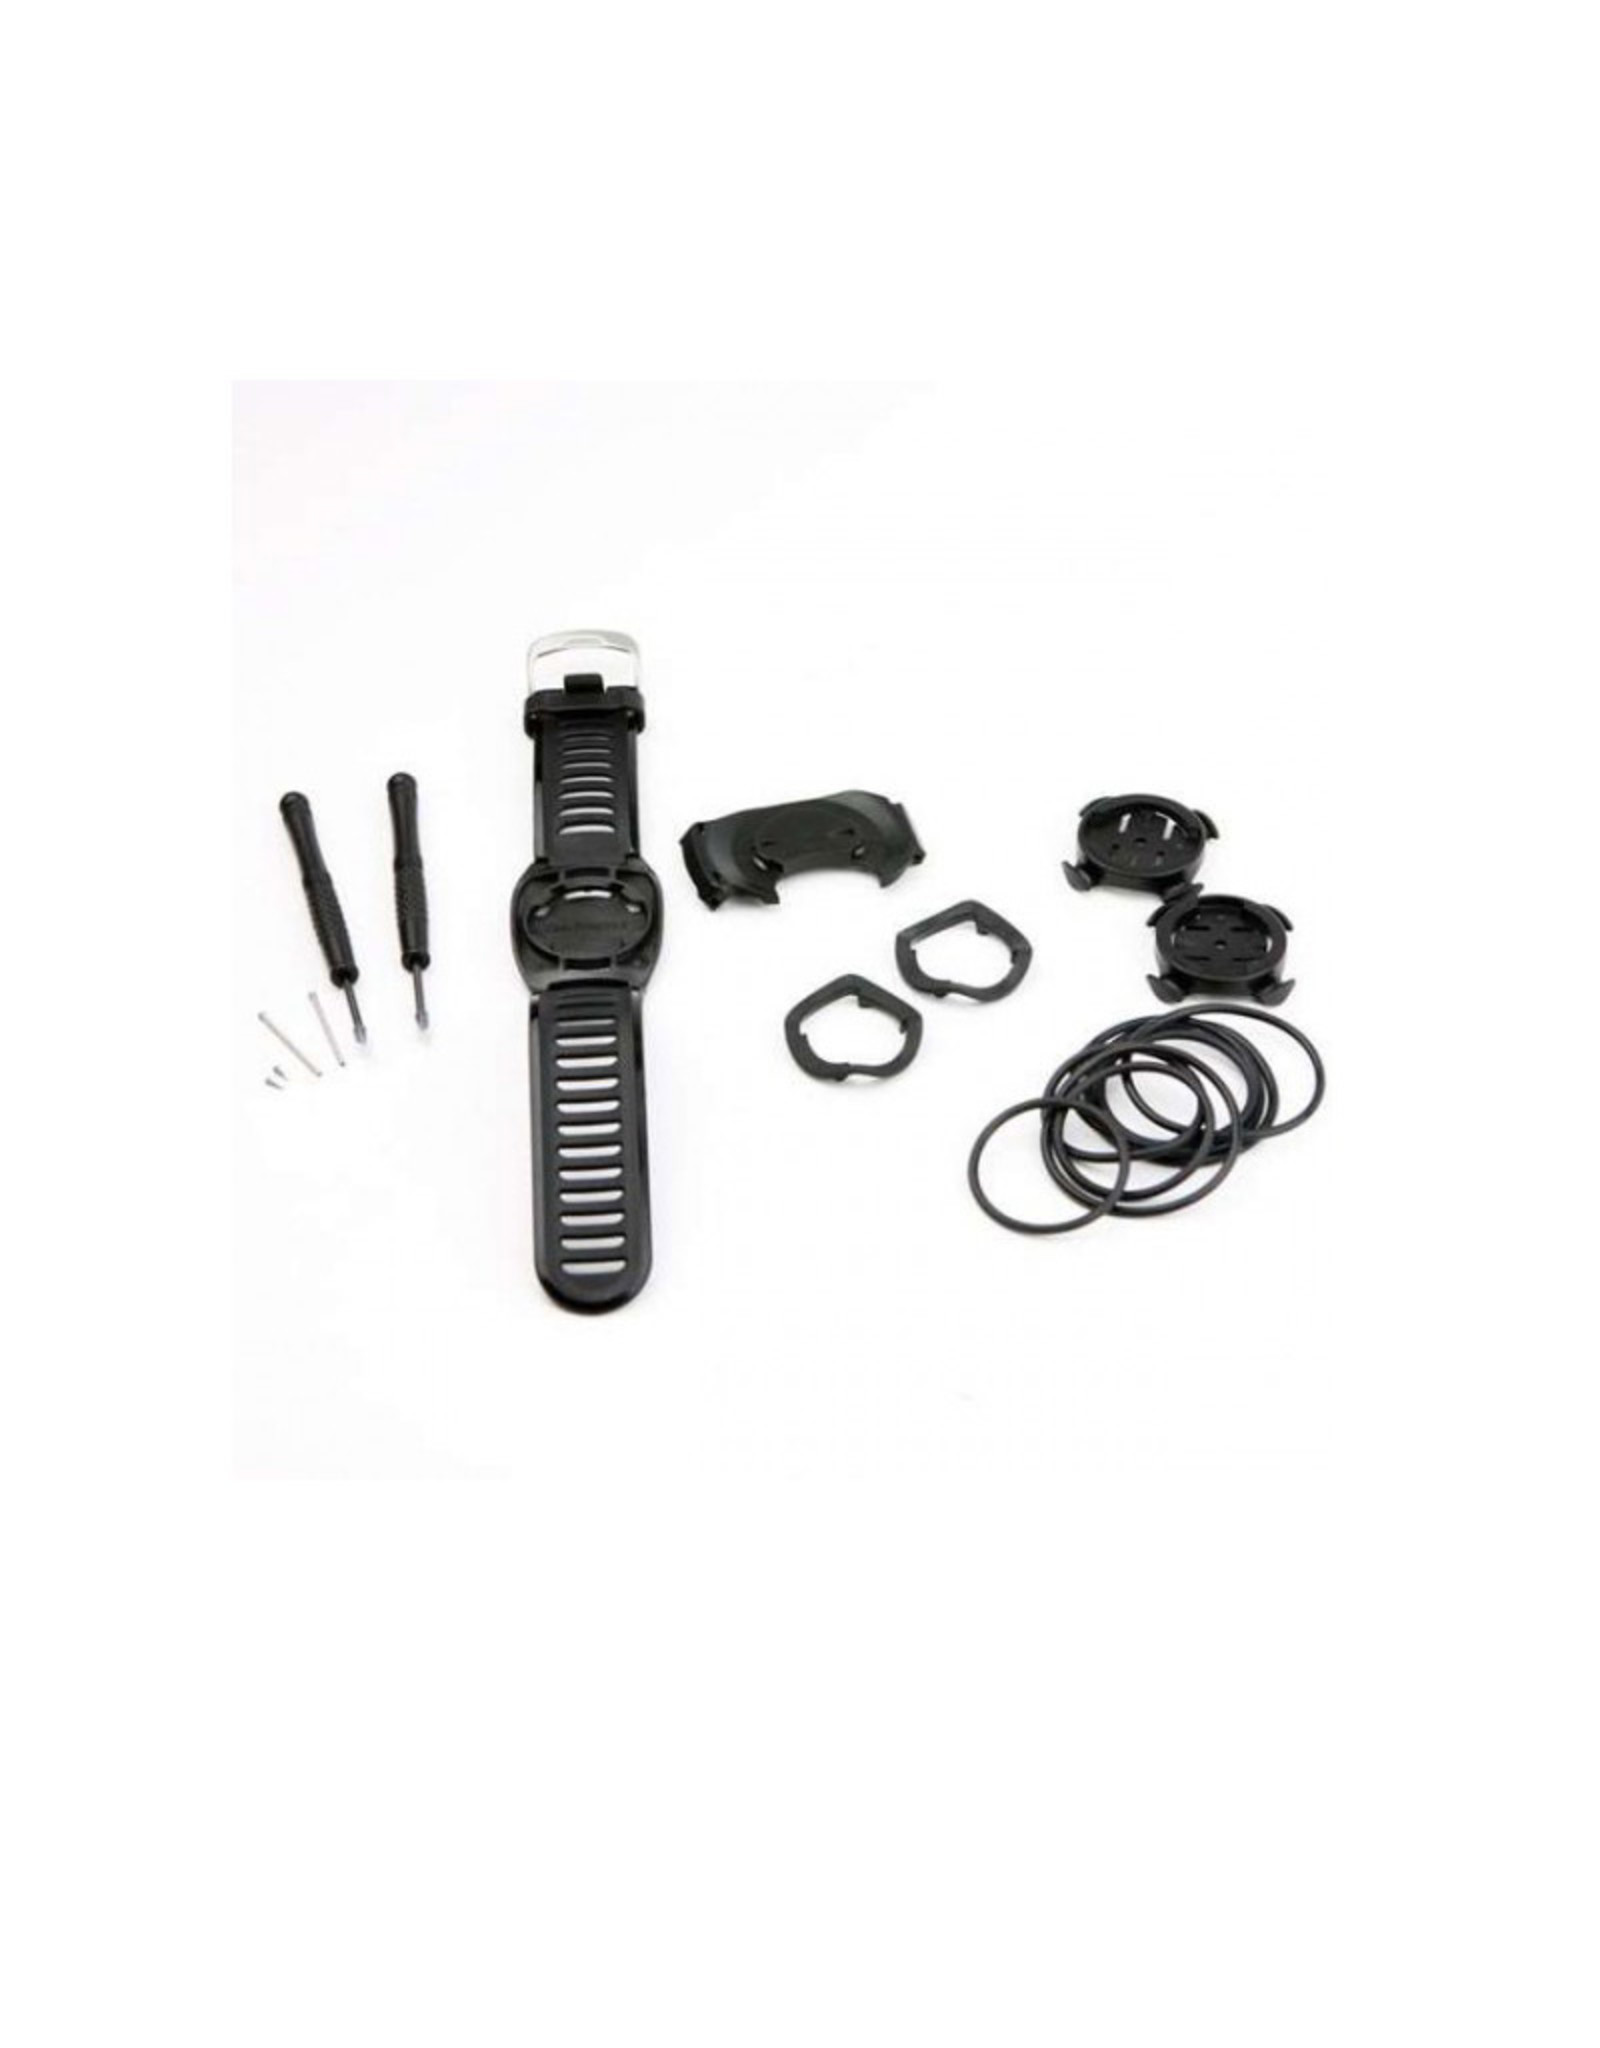 Garmin International Garmin Quick Release Mounting Kit